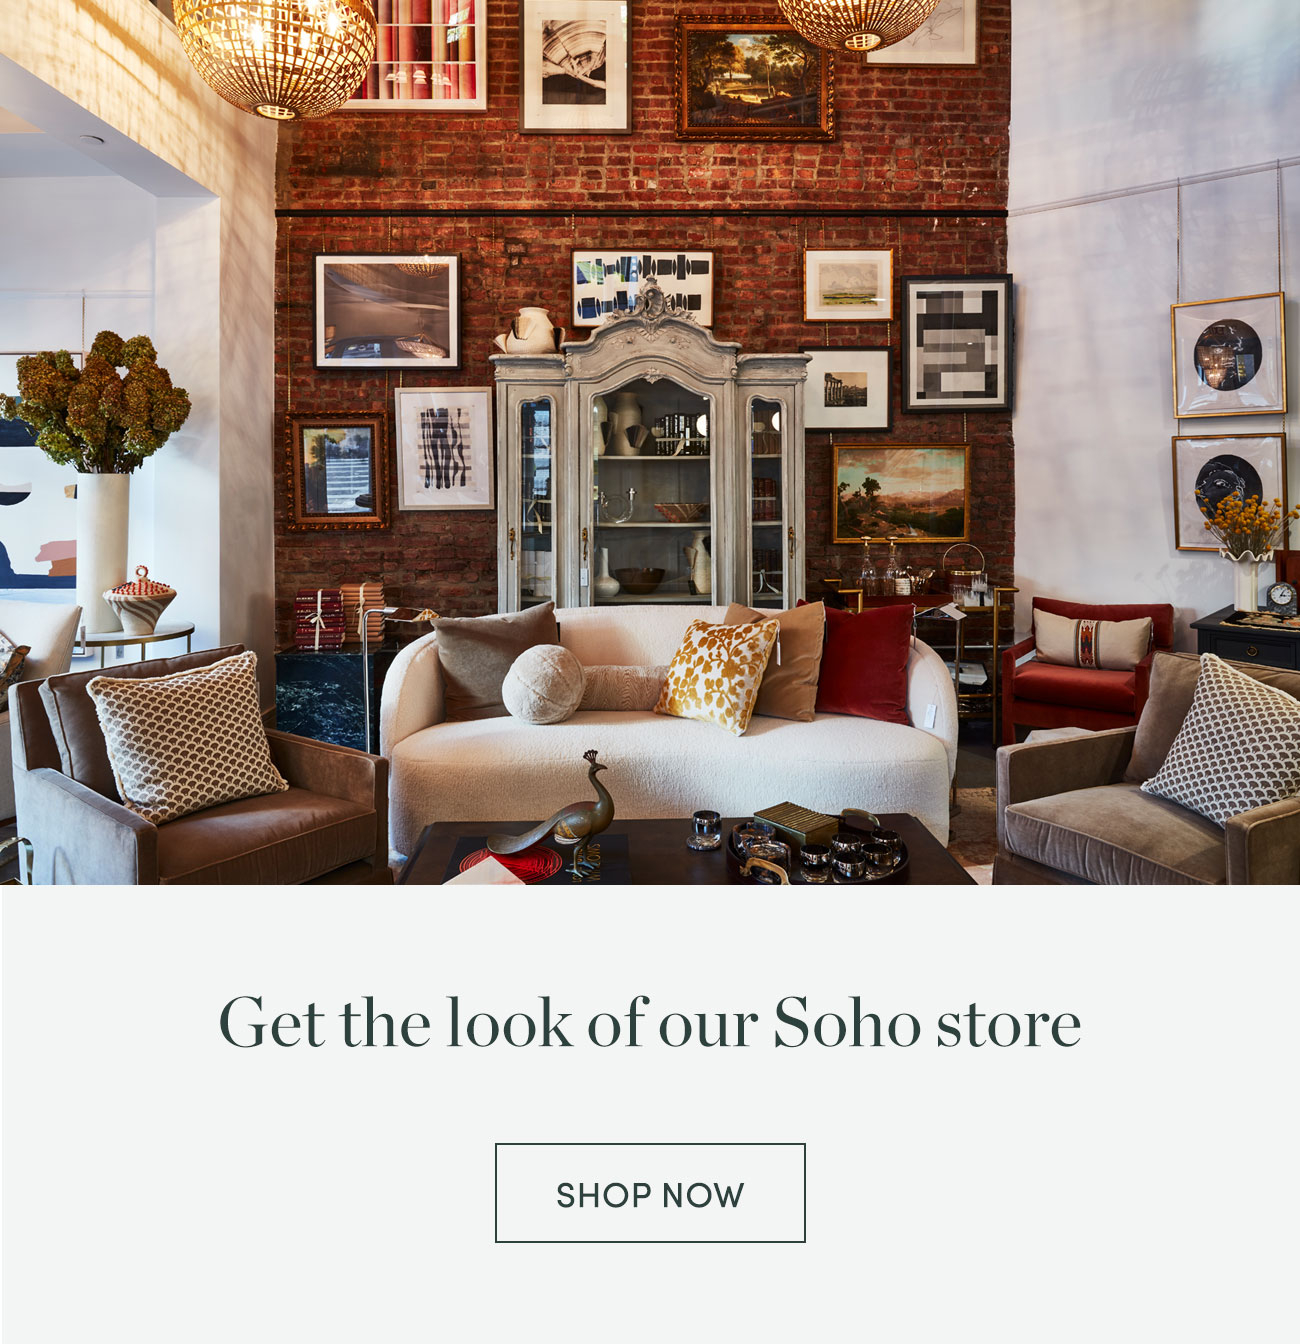 Get the look of our SoHo store